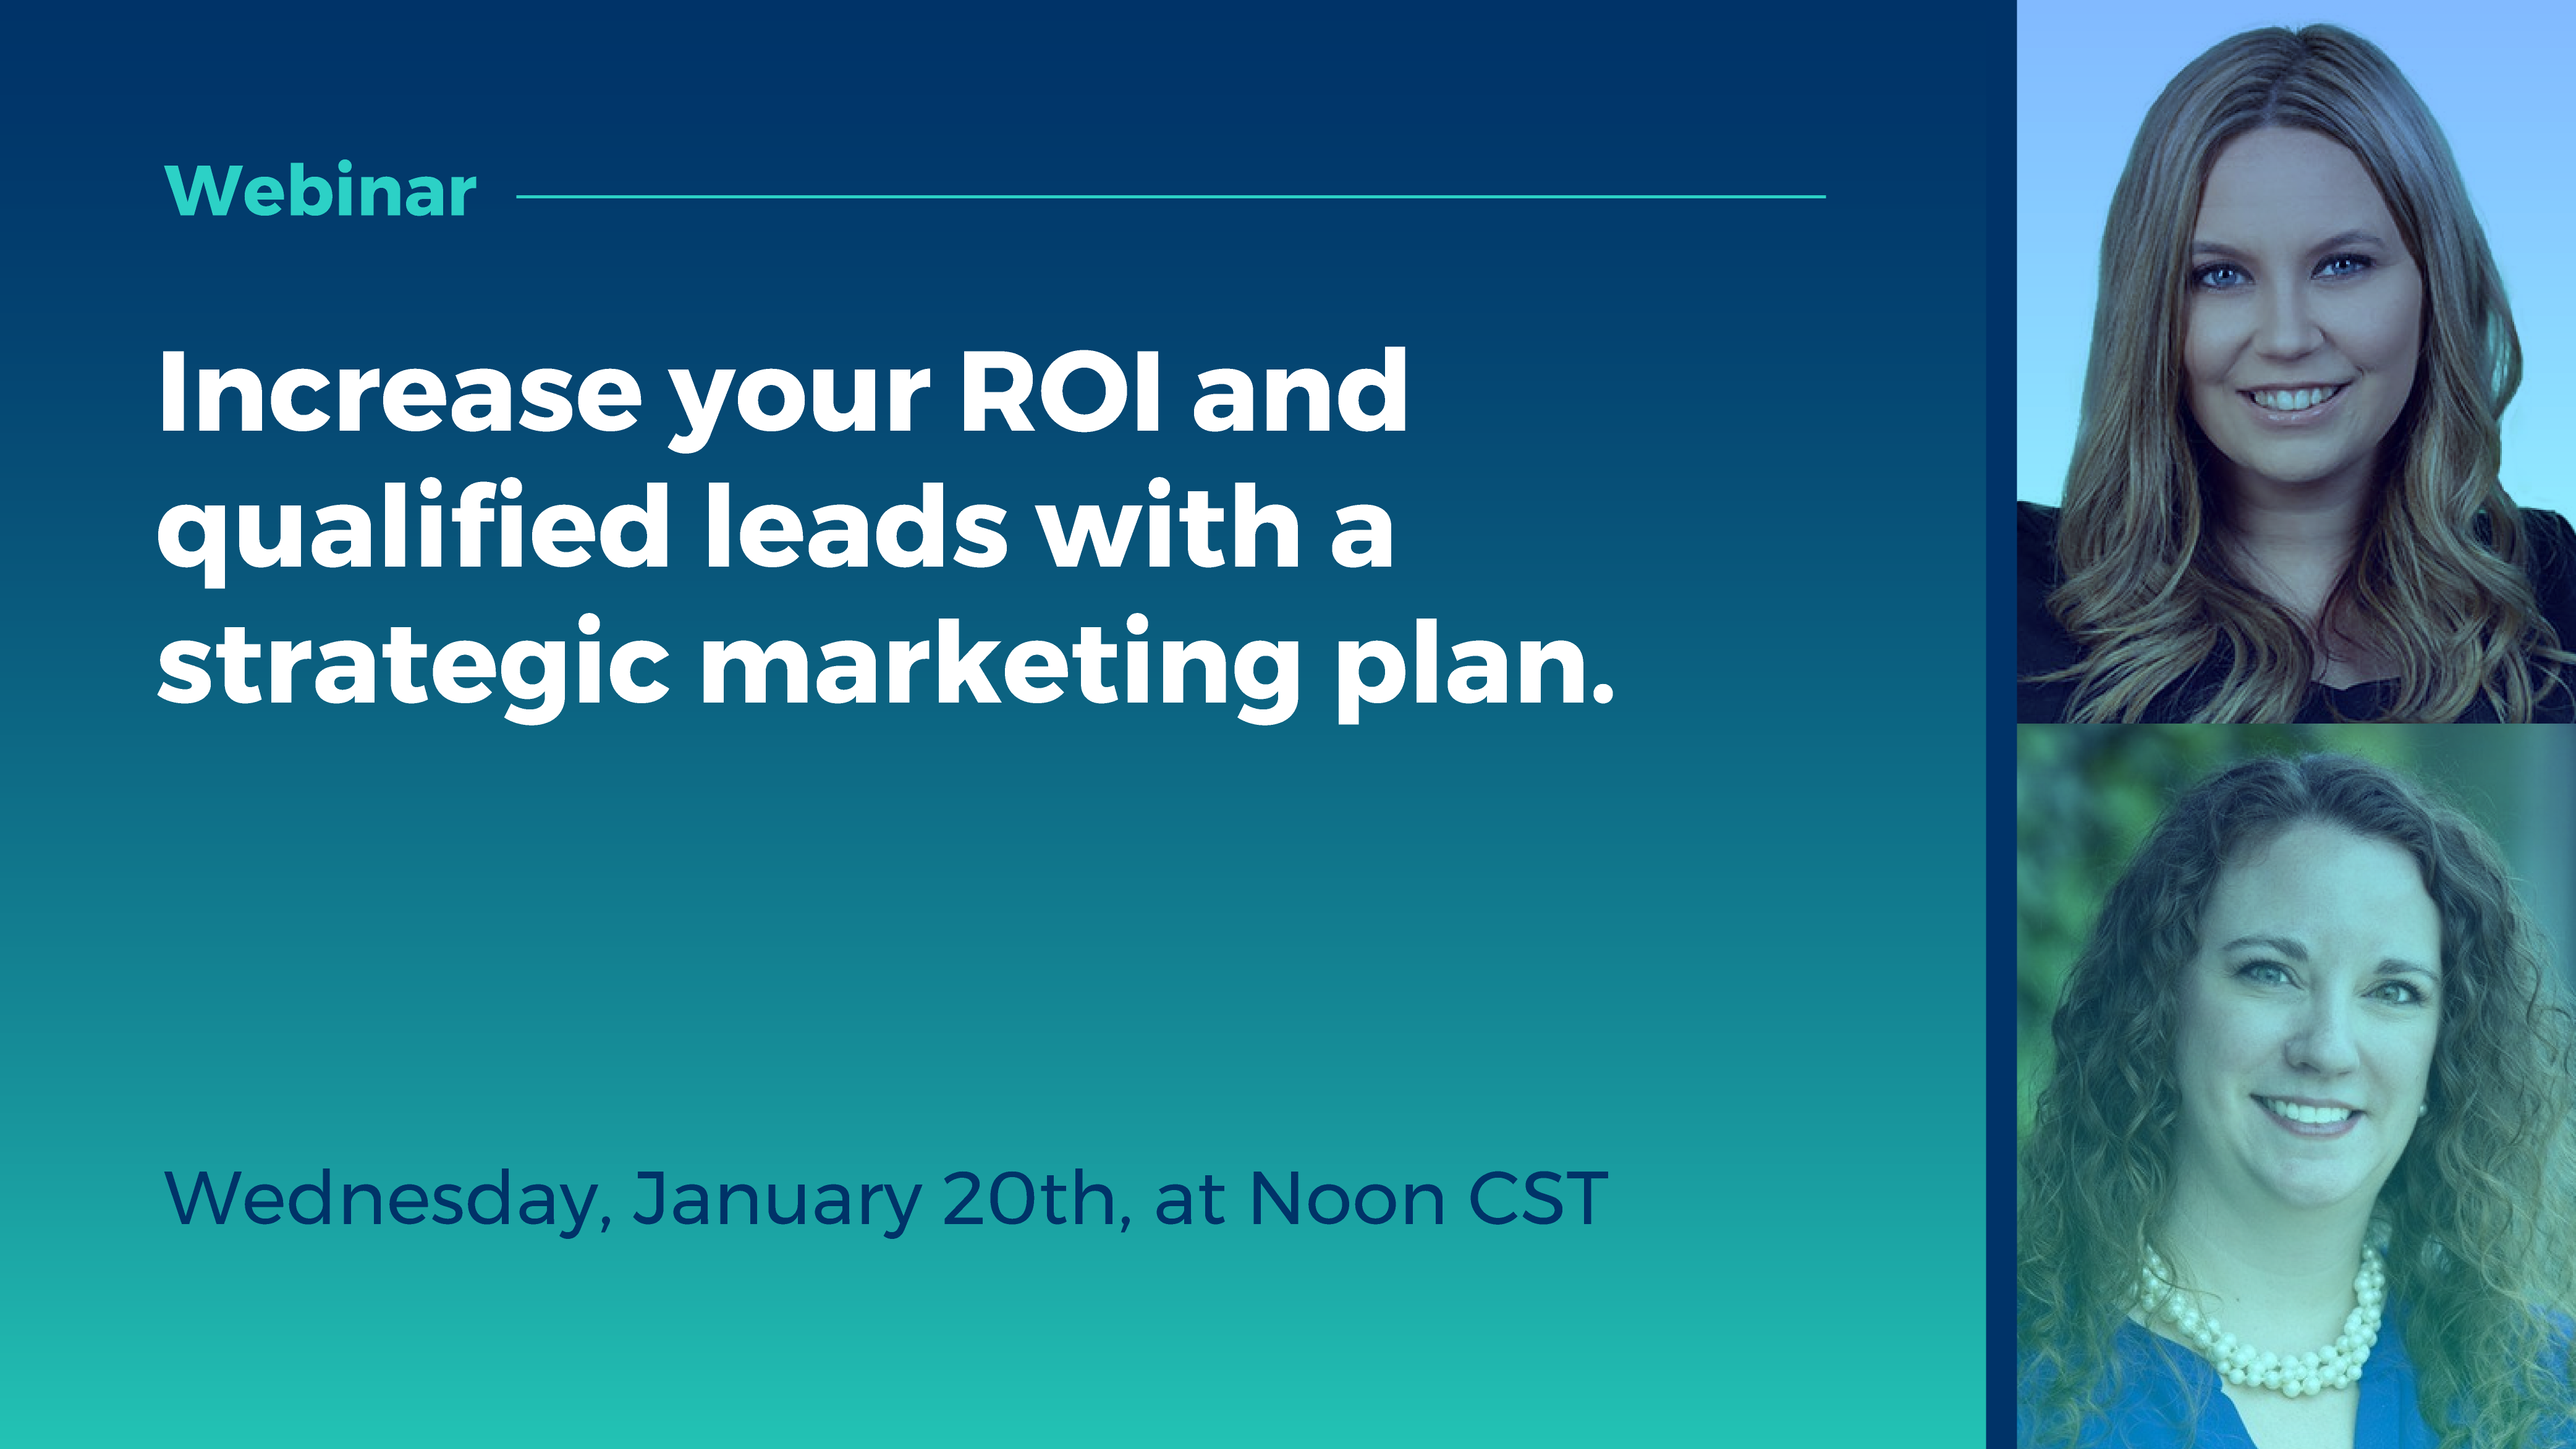 Webinar: Increase Your ROI and Qualified Leads with a Strategic Marketing Plan